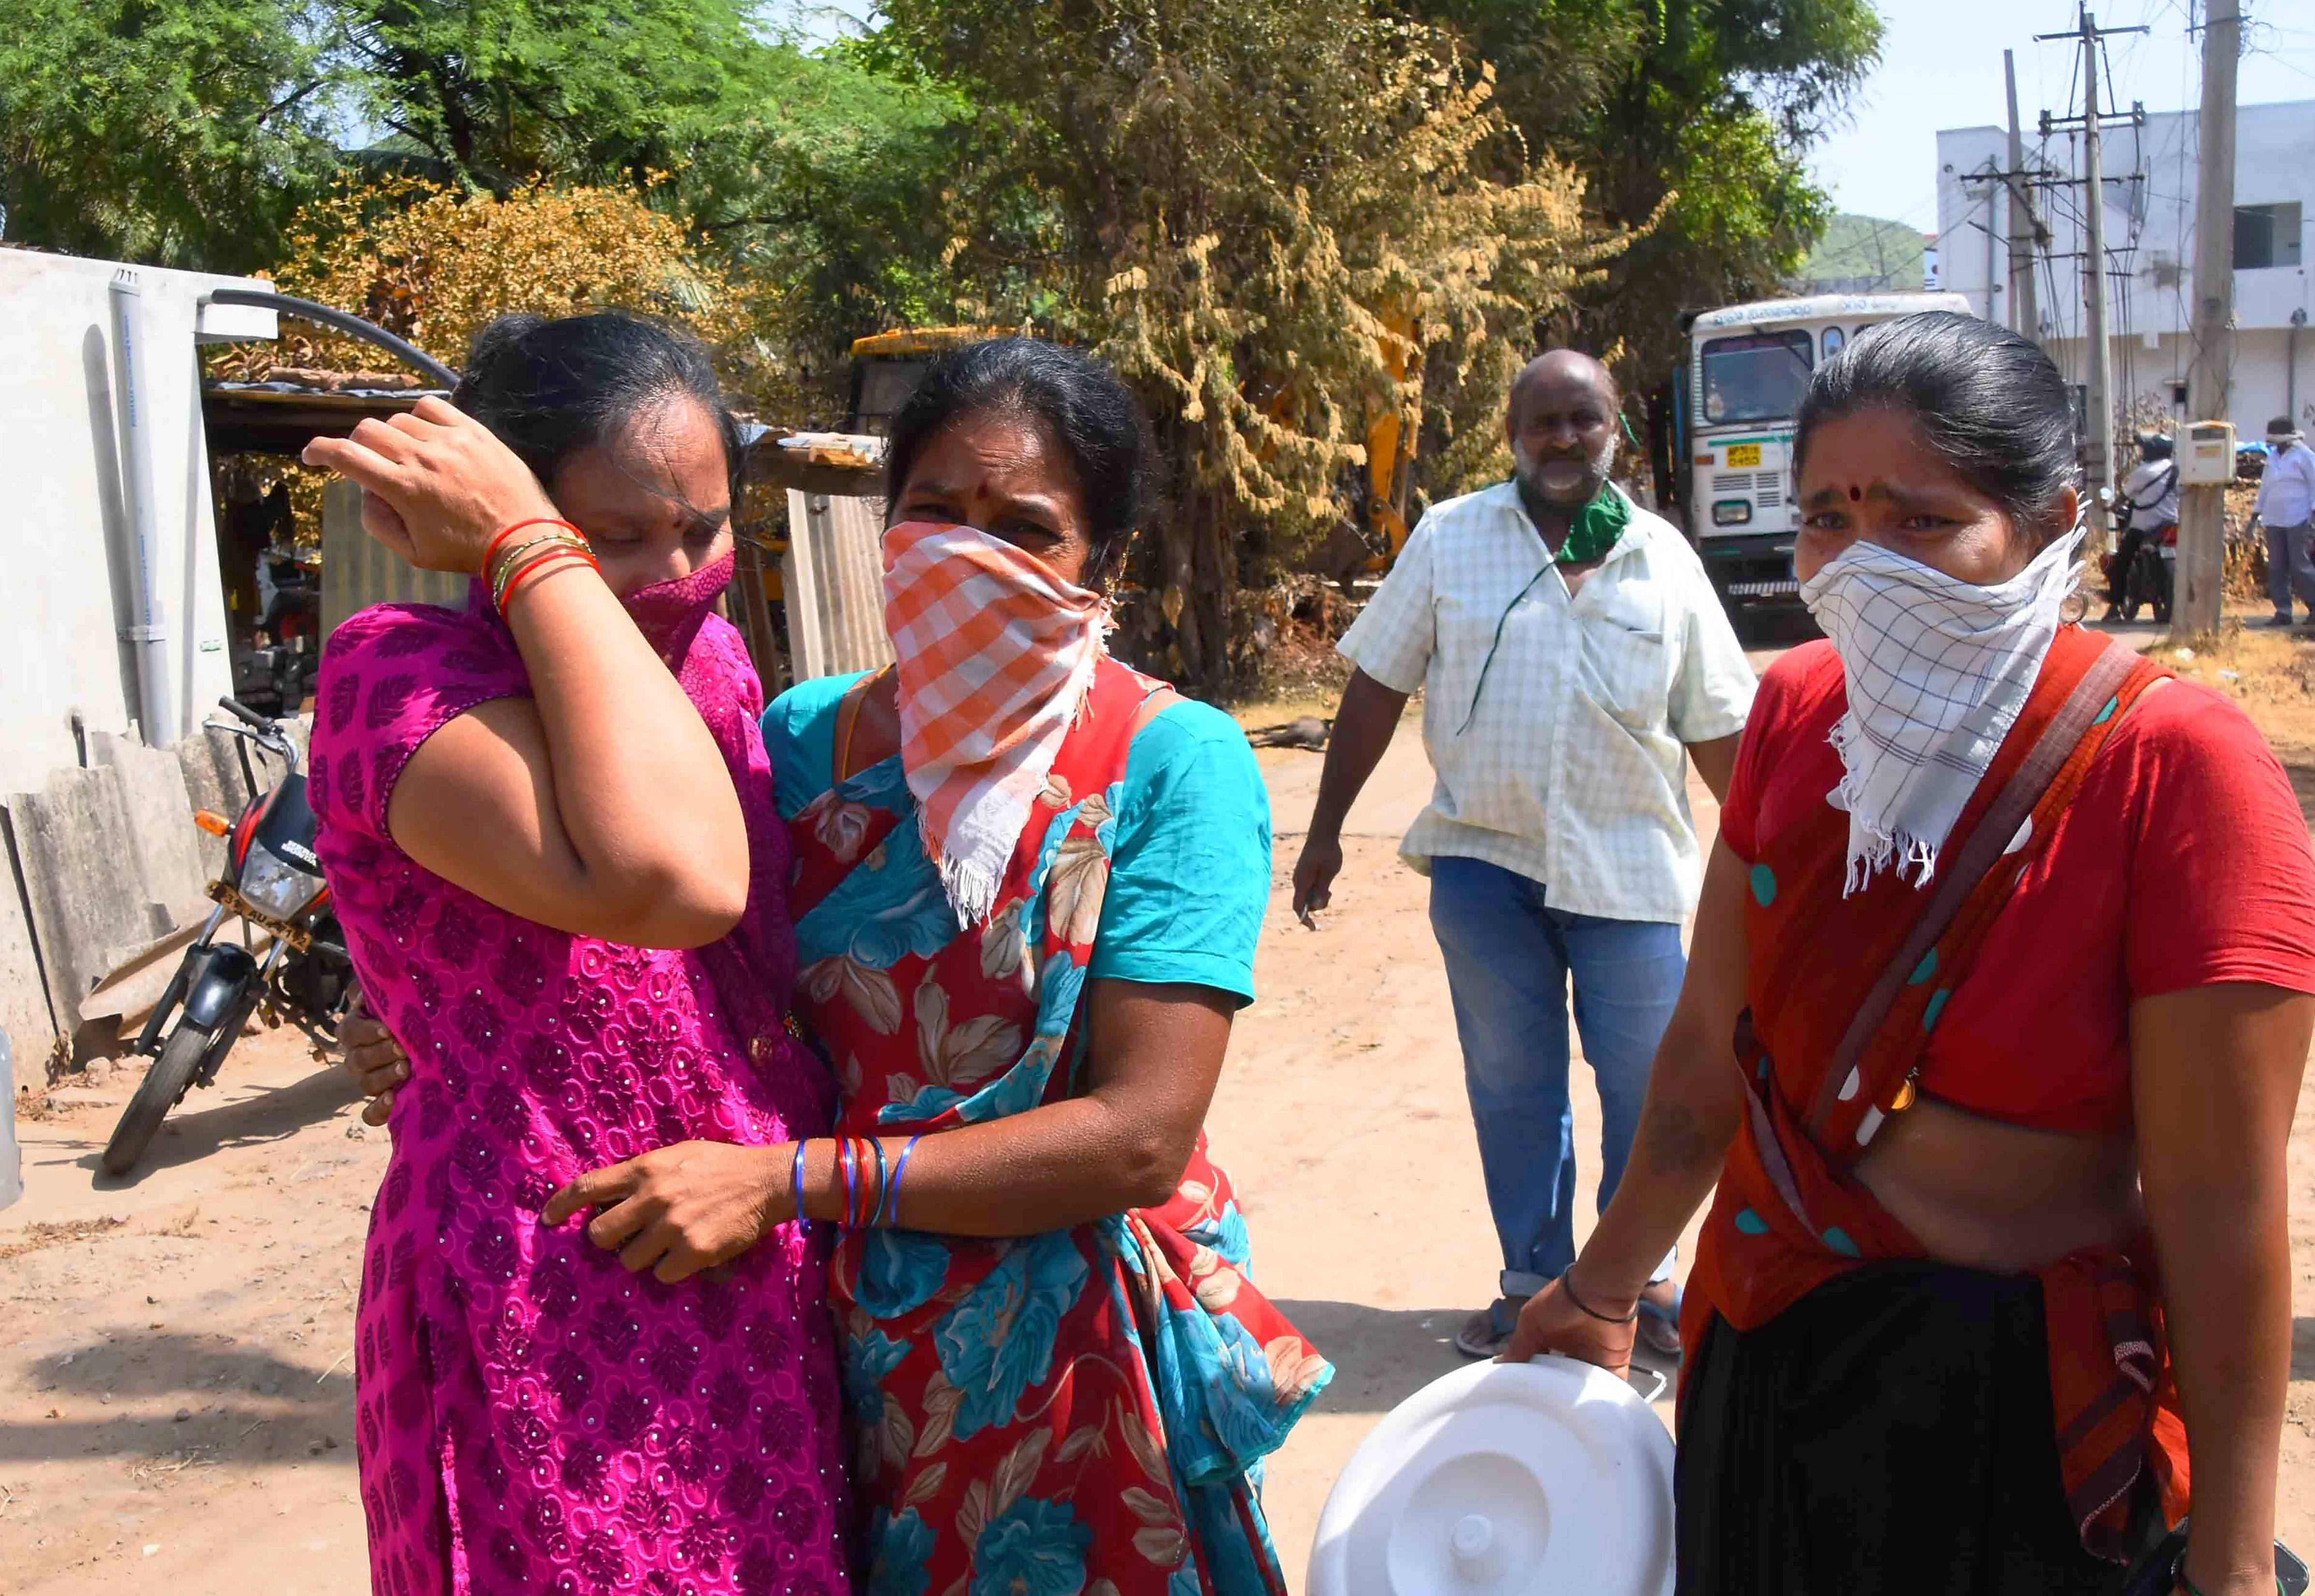 Residents return back to RR Venkatapuram village, a day after the major chemical gas leak incident at LG Polymers plant in Visakhapatnam on Friday, May 8, 2020.